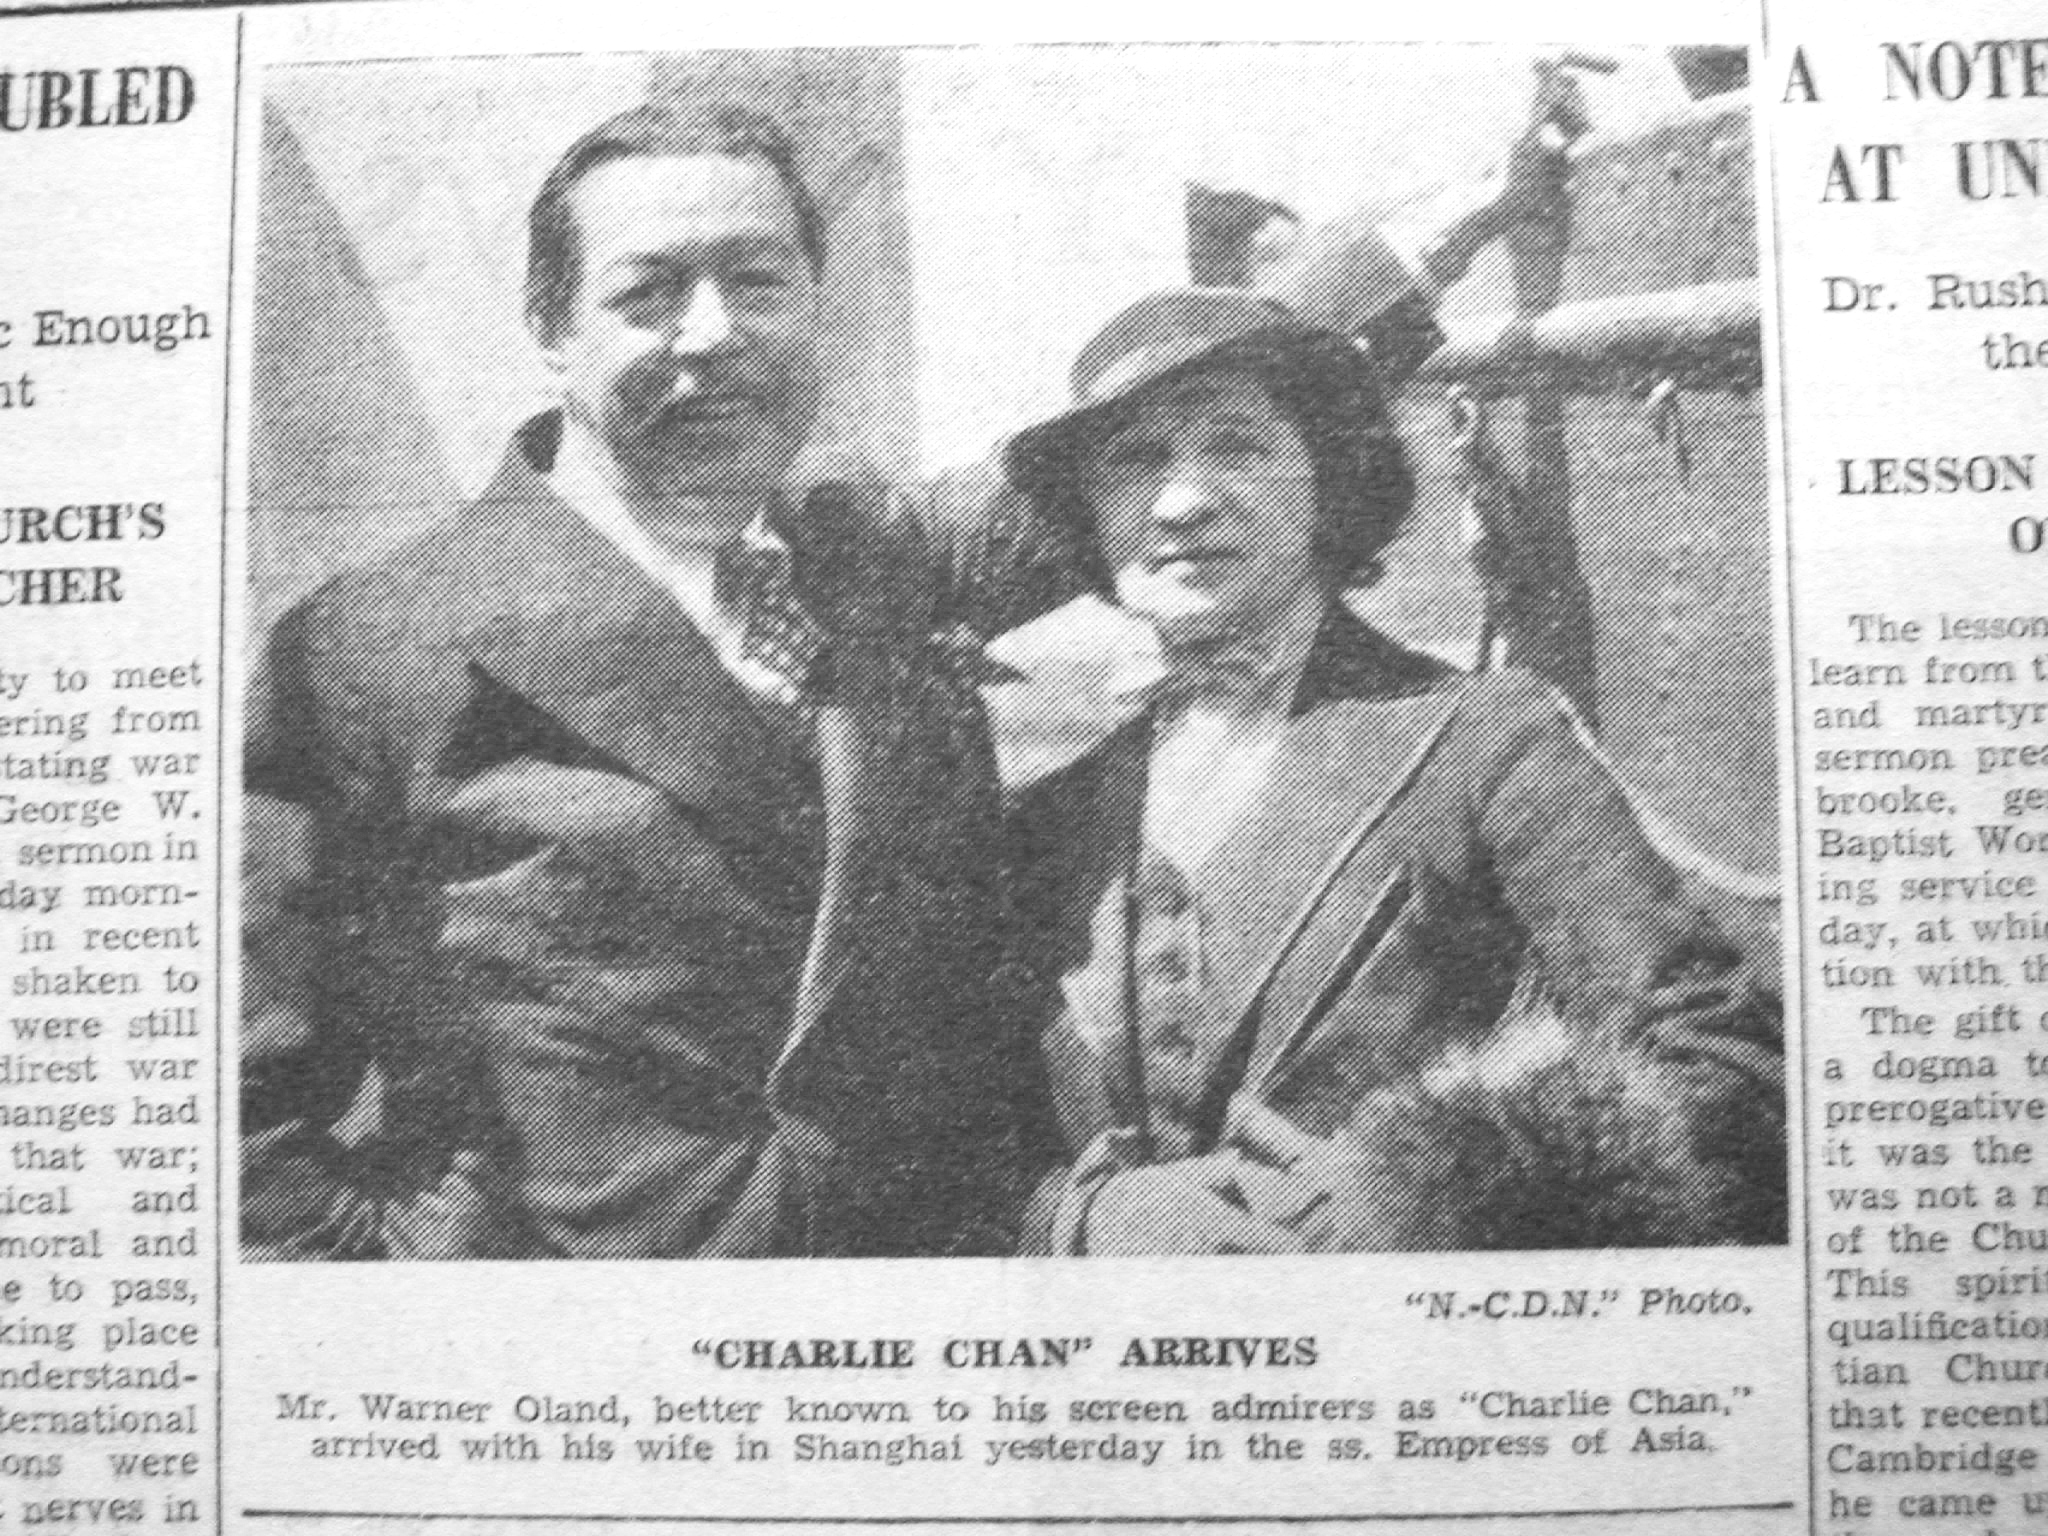 20130214 Warner Oland and wife arriving shanghai March 23,1936